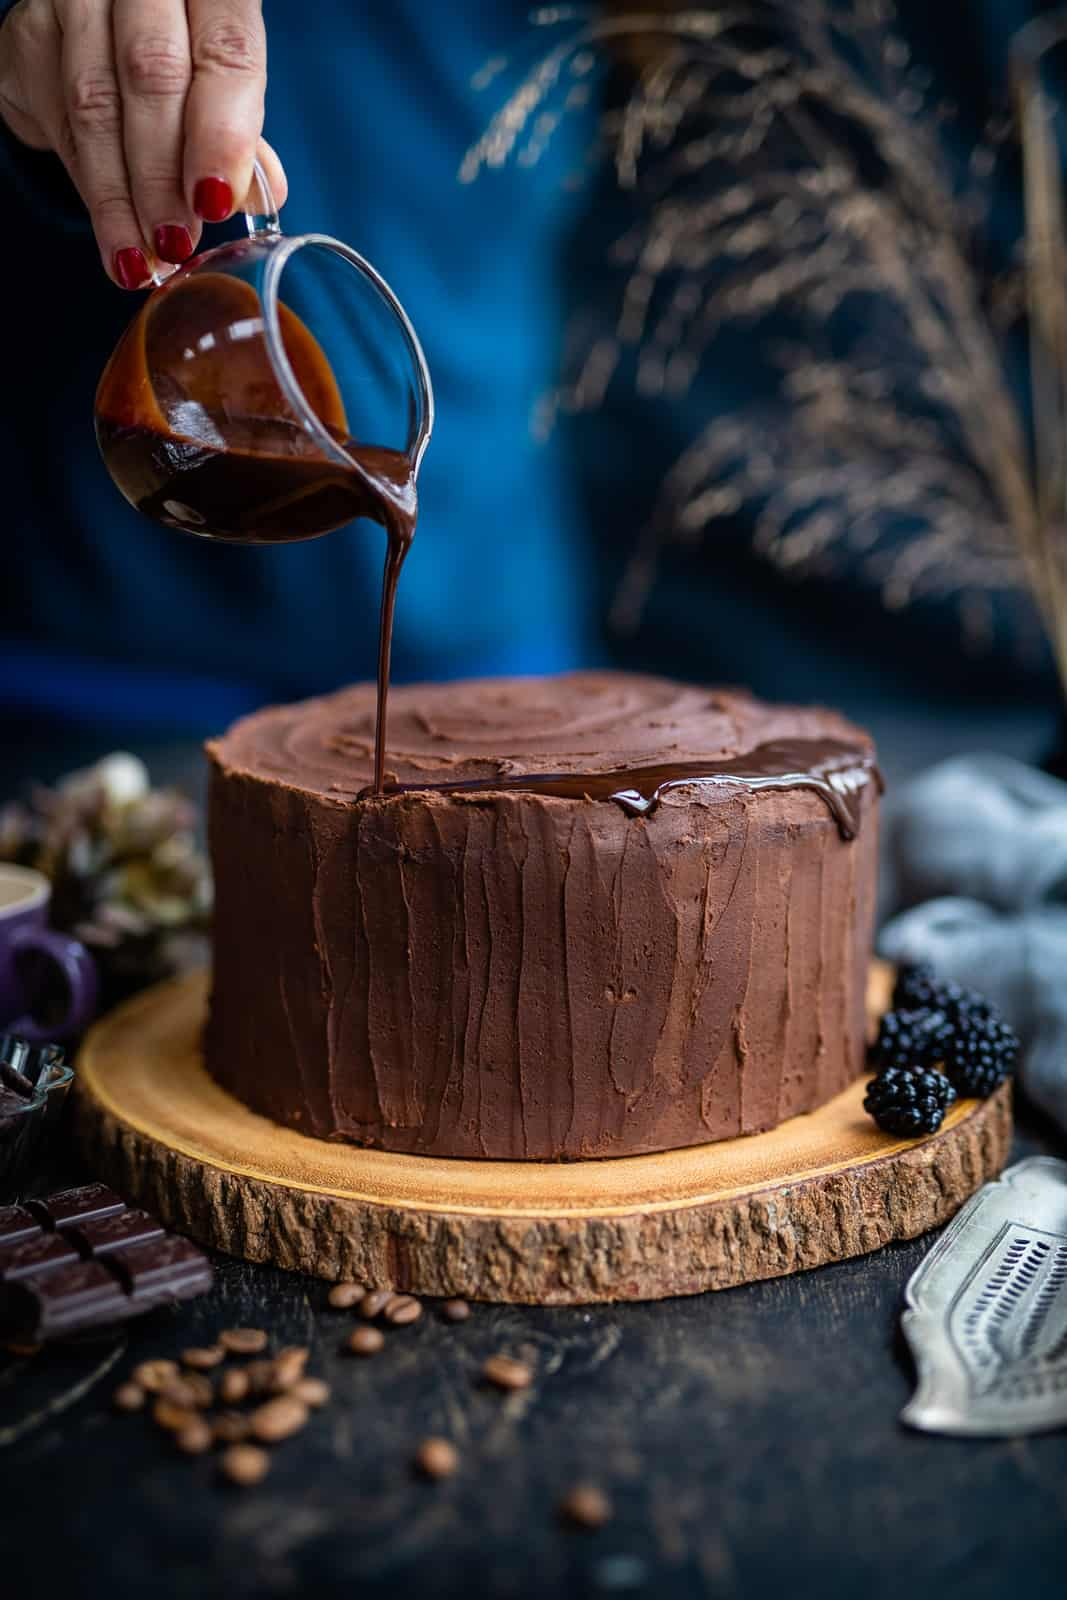 Adding a chocolate drip on a frosted chocolate cake